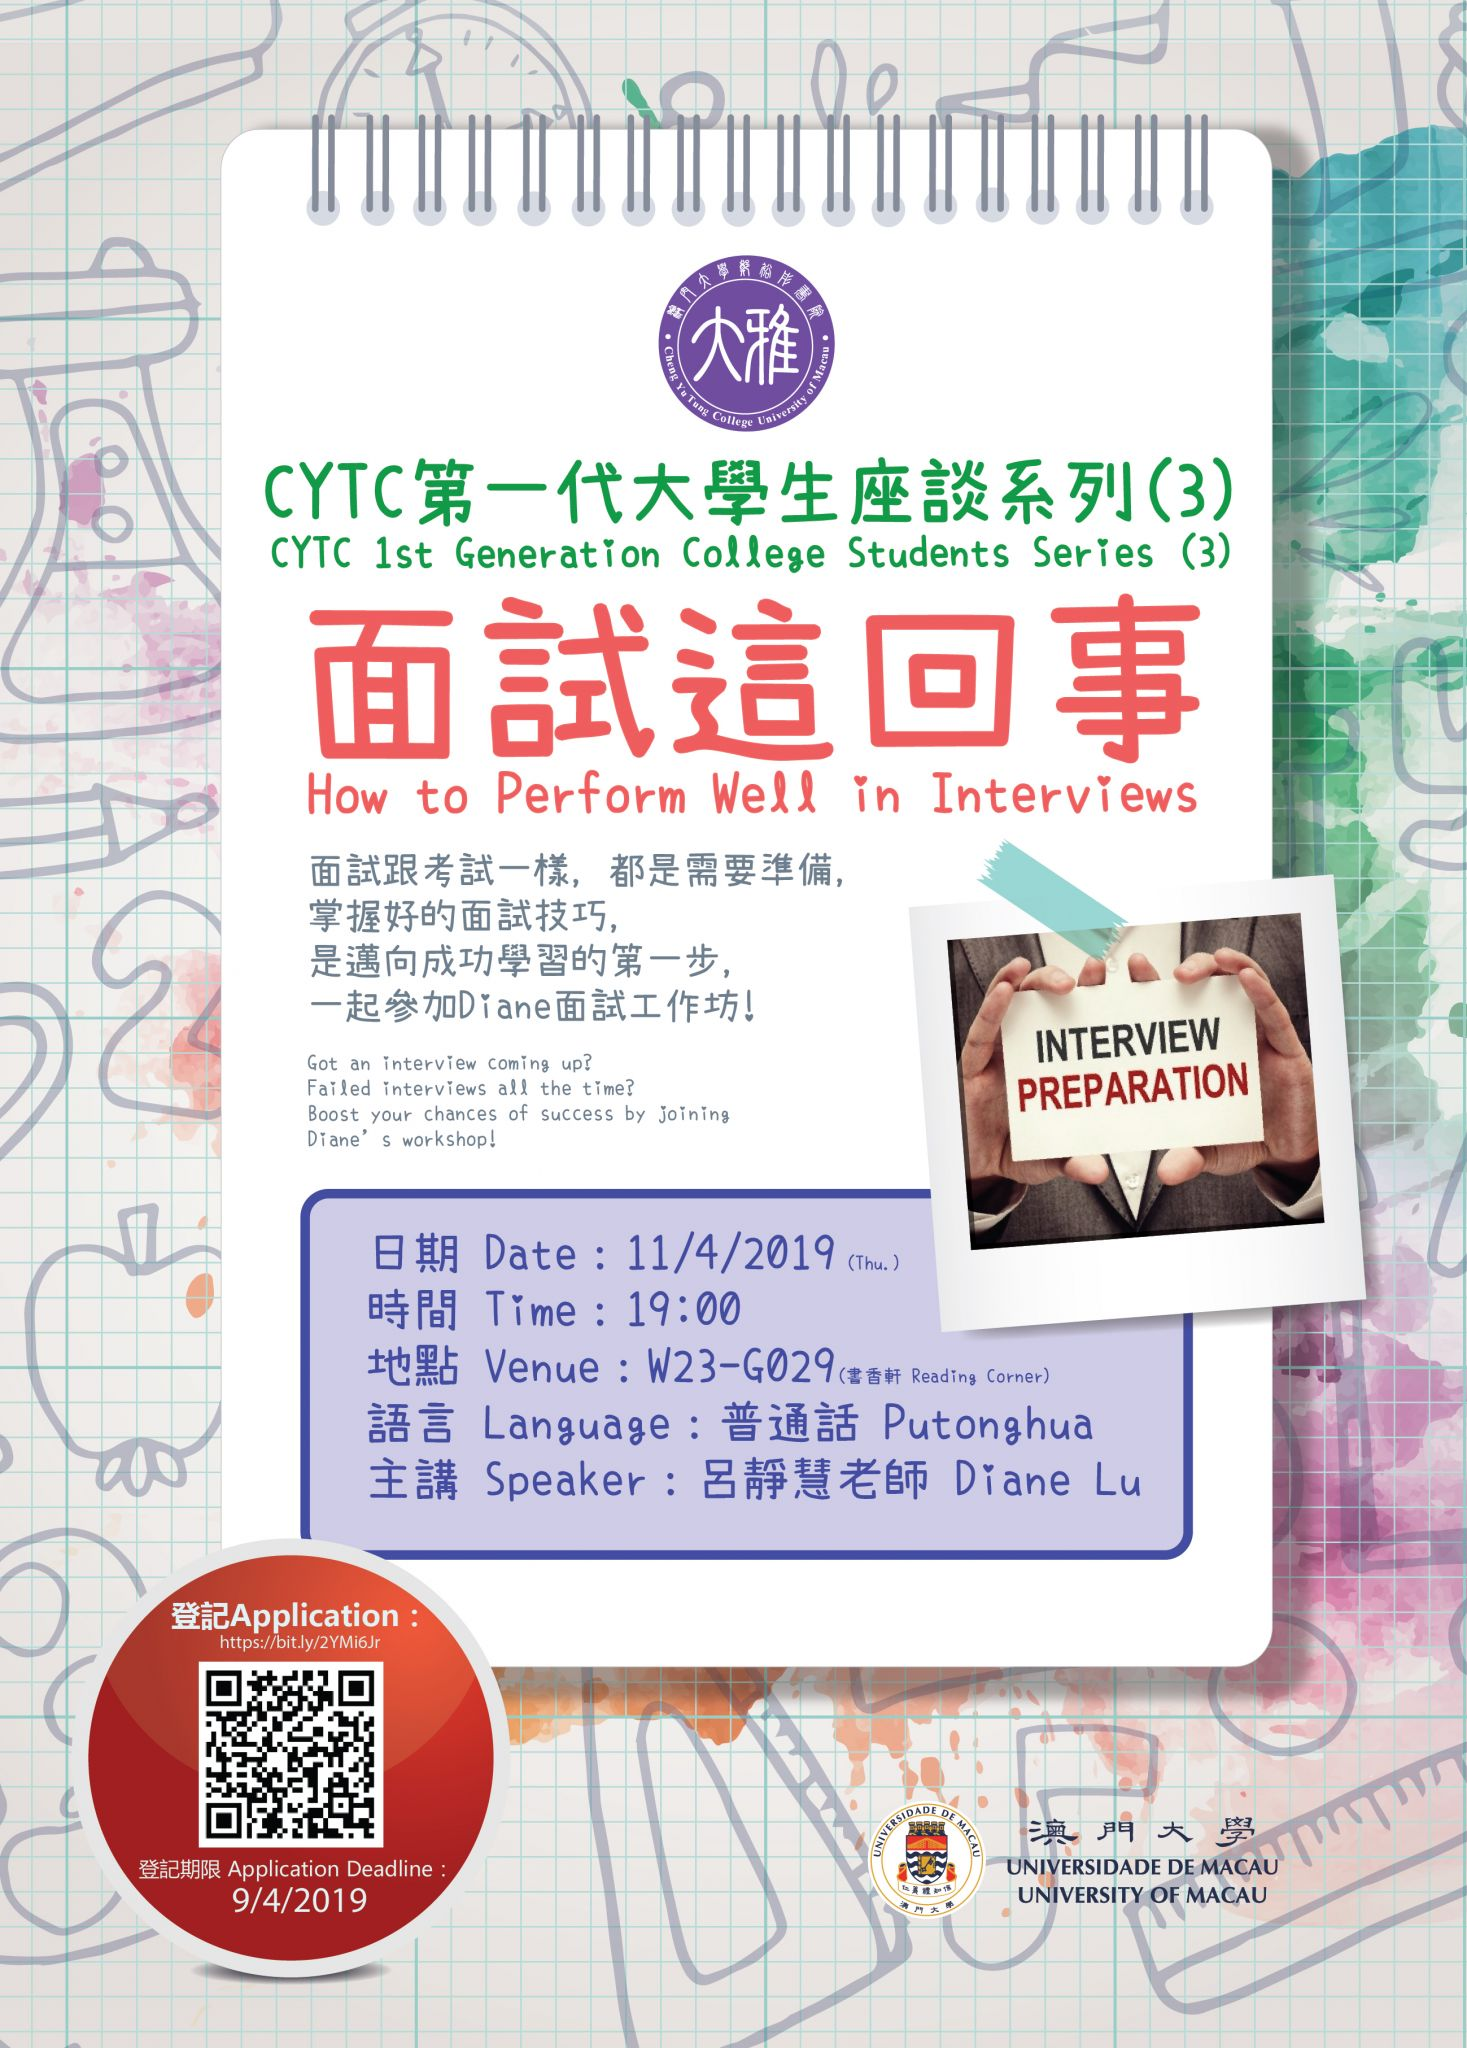 CYTC Activities: CYTC 1st Generation College Students Series (3) - How to Perform Well in Interviews